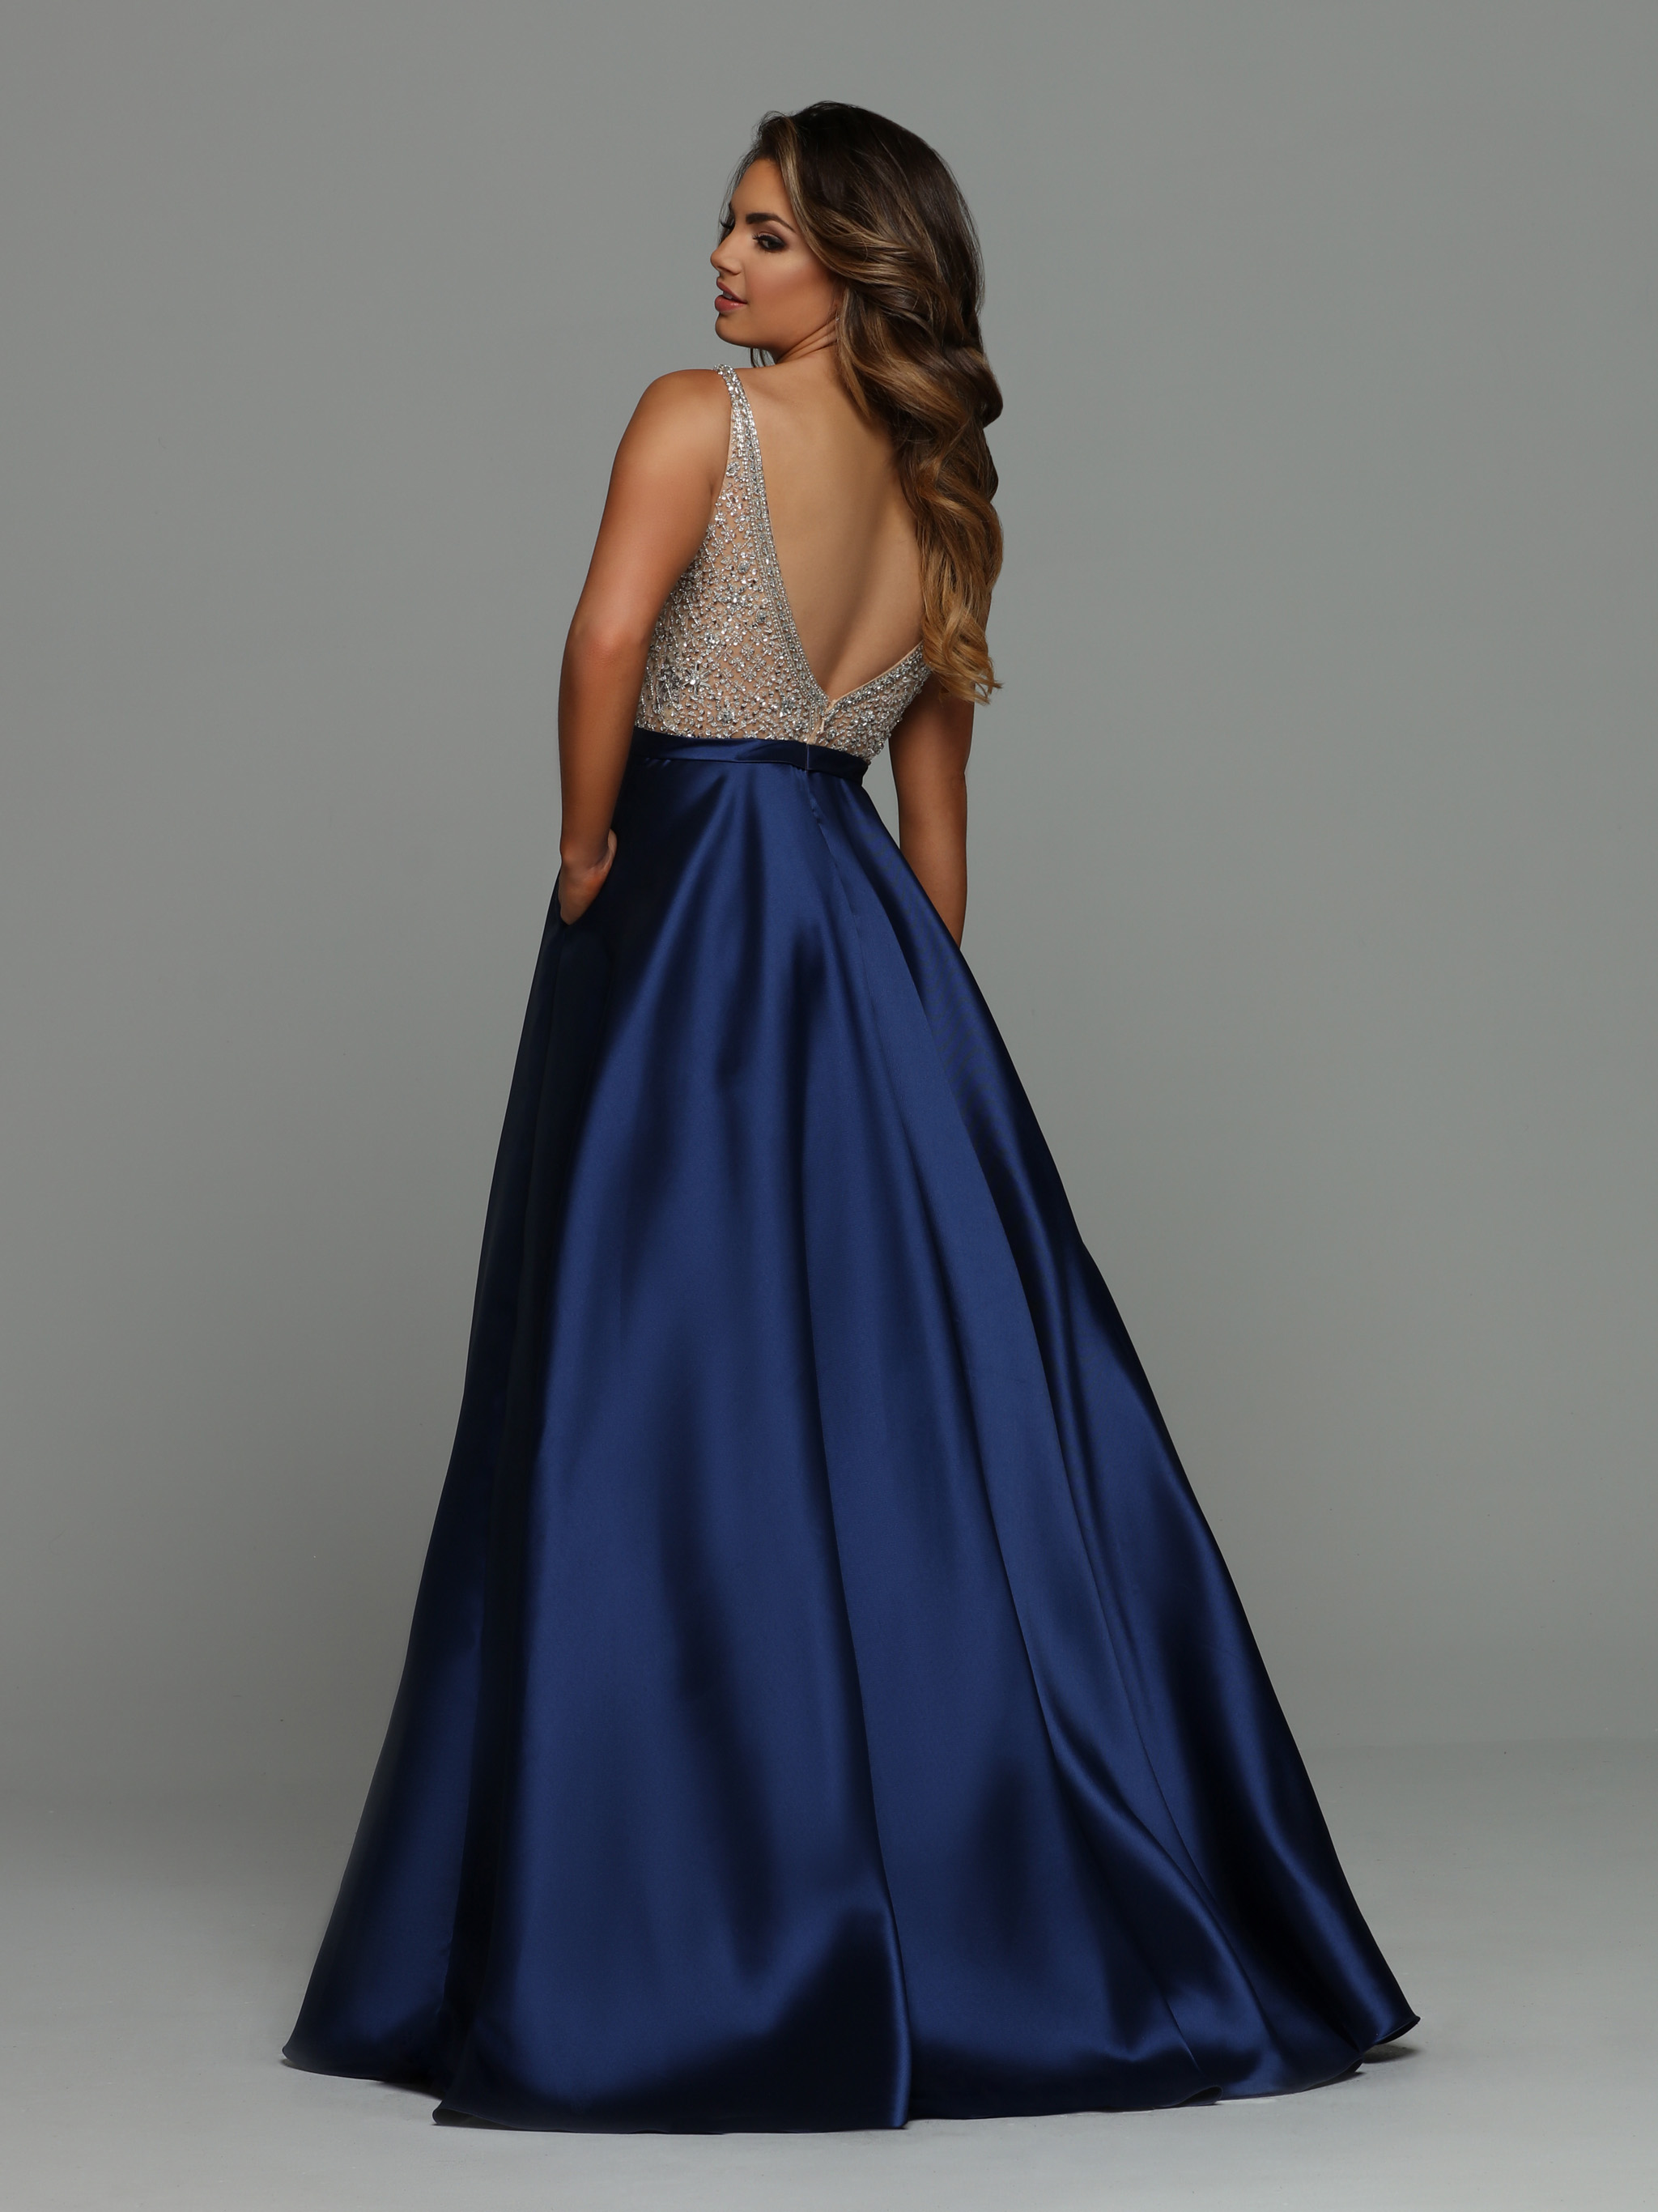 Image showing back view of style #71921